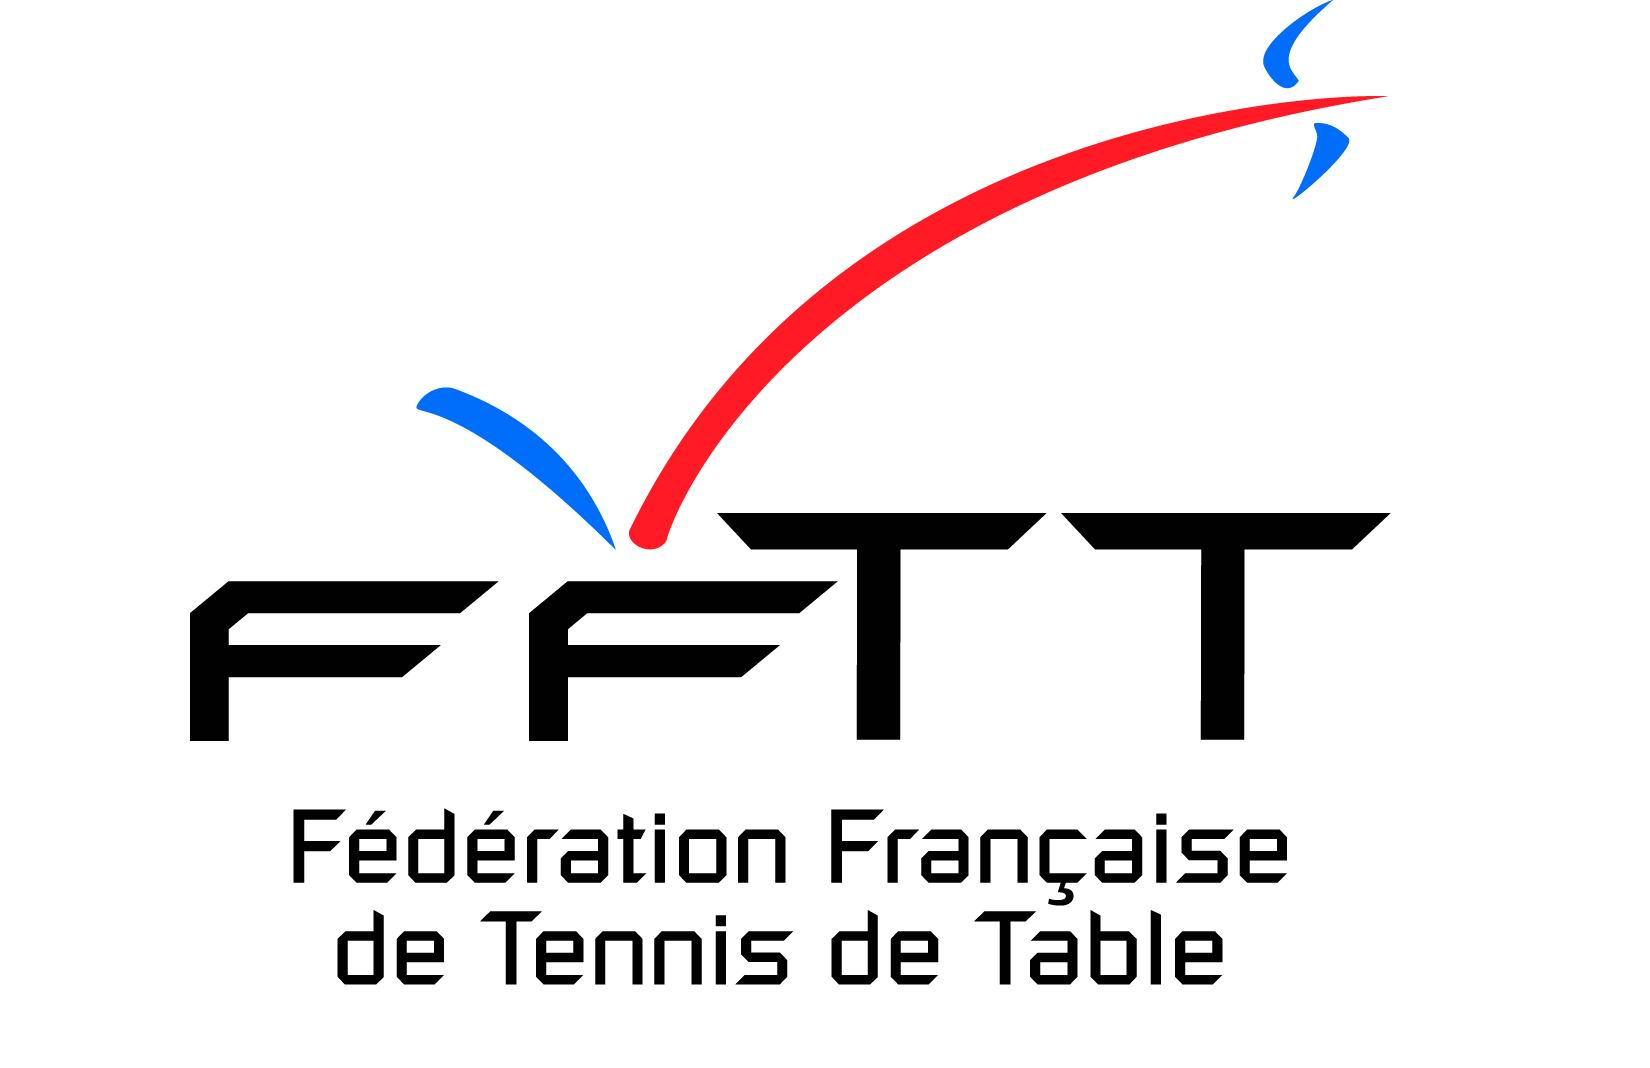 Tt formation comit marne de tennis de table - Comite departemental de tennis de table ...